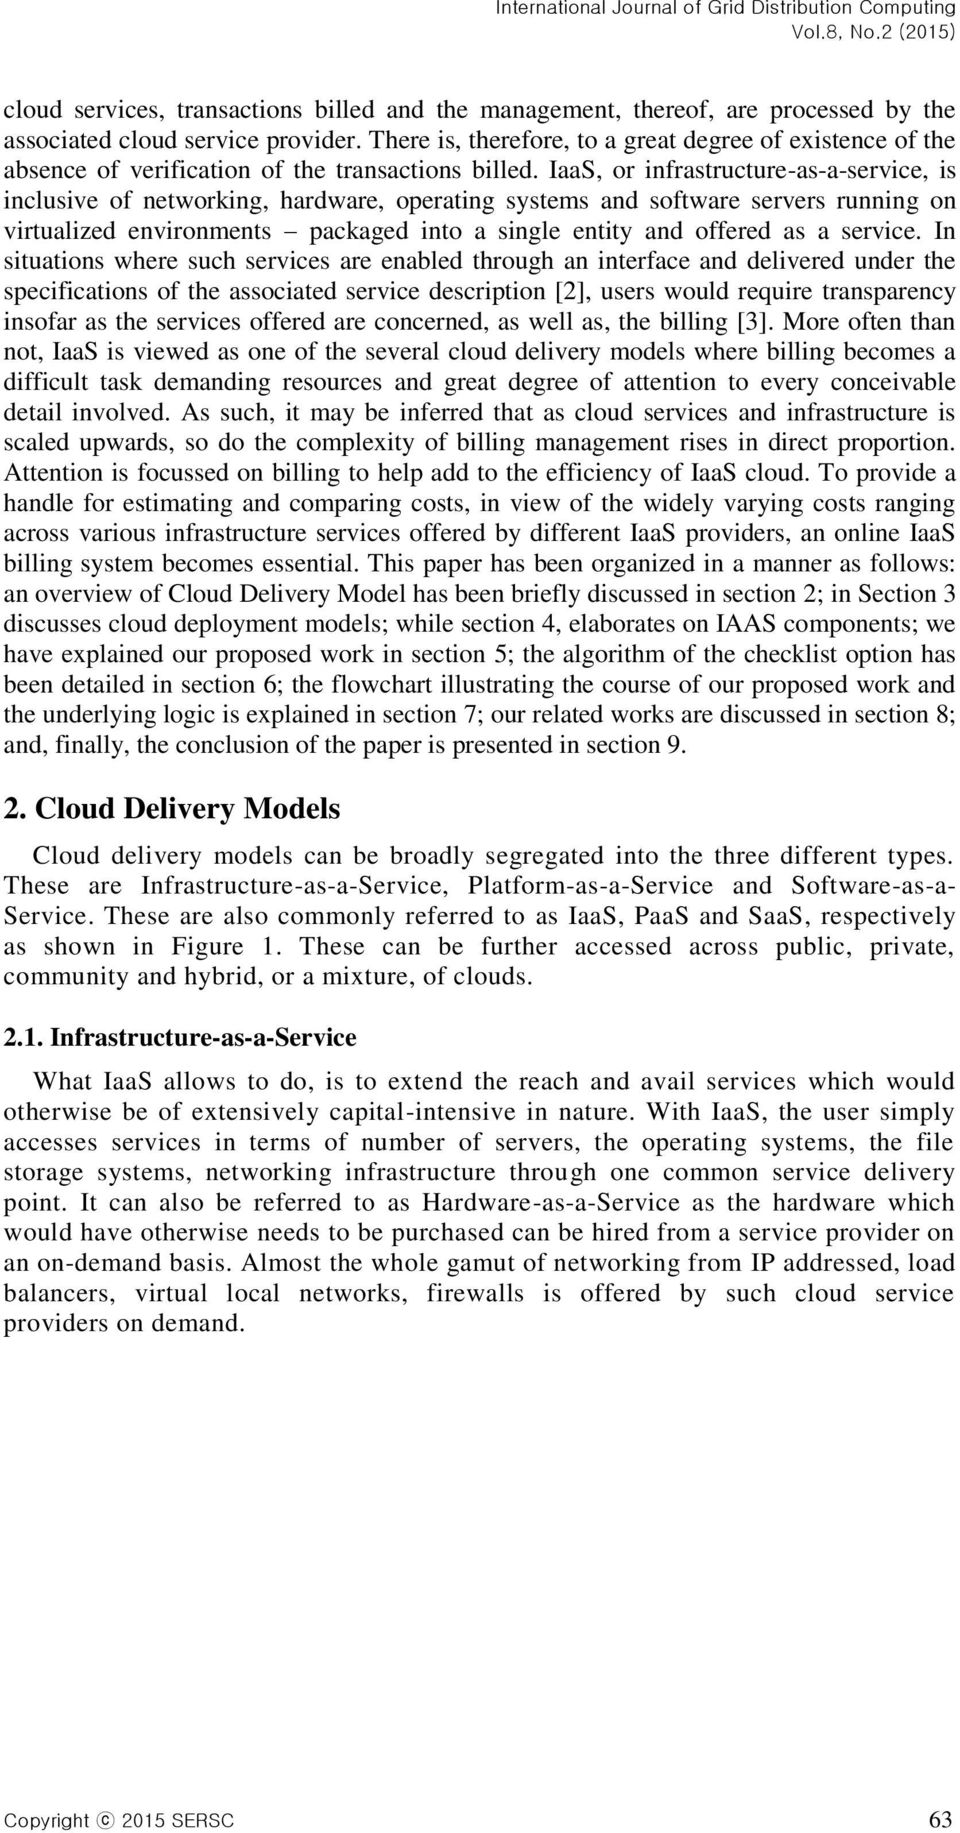 IaaS, or infrastructure-as-a-service, is inclusive of networking, hardware, operating systems and software servers running on virtualized environments packaged into a single entity and offered as a